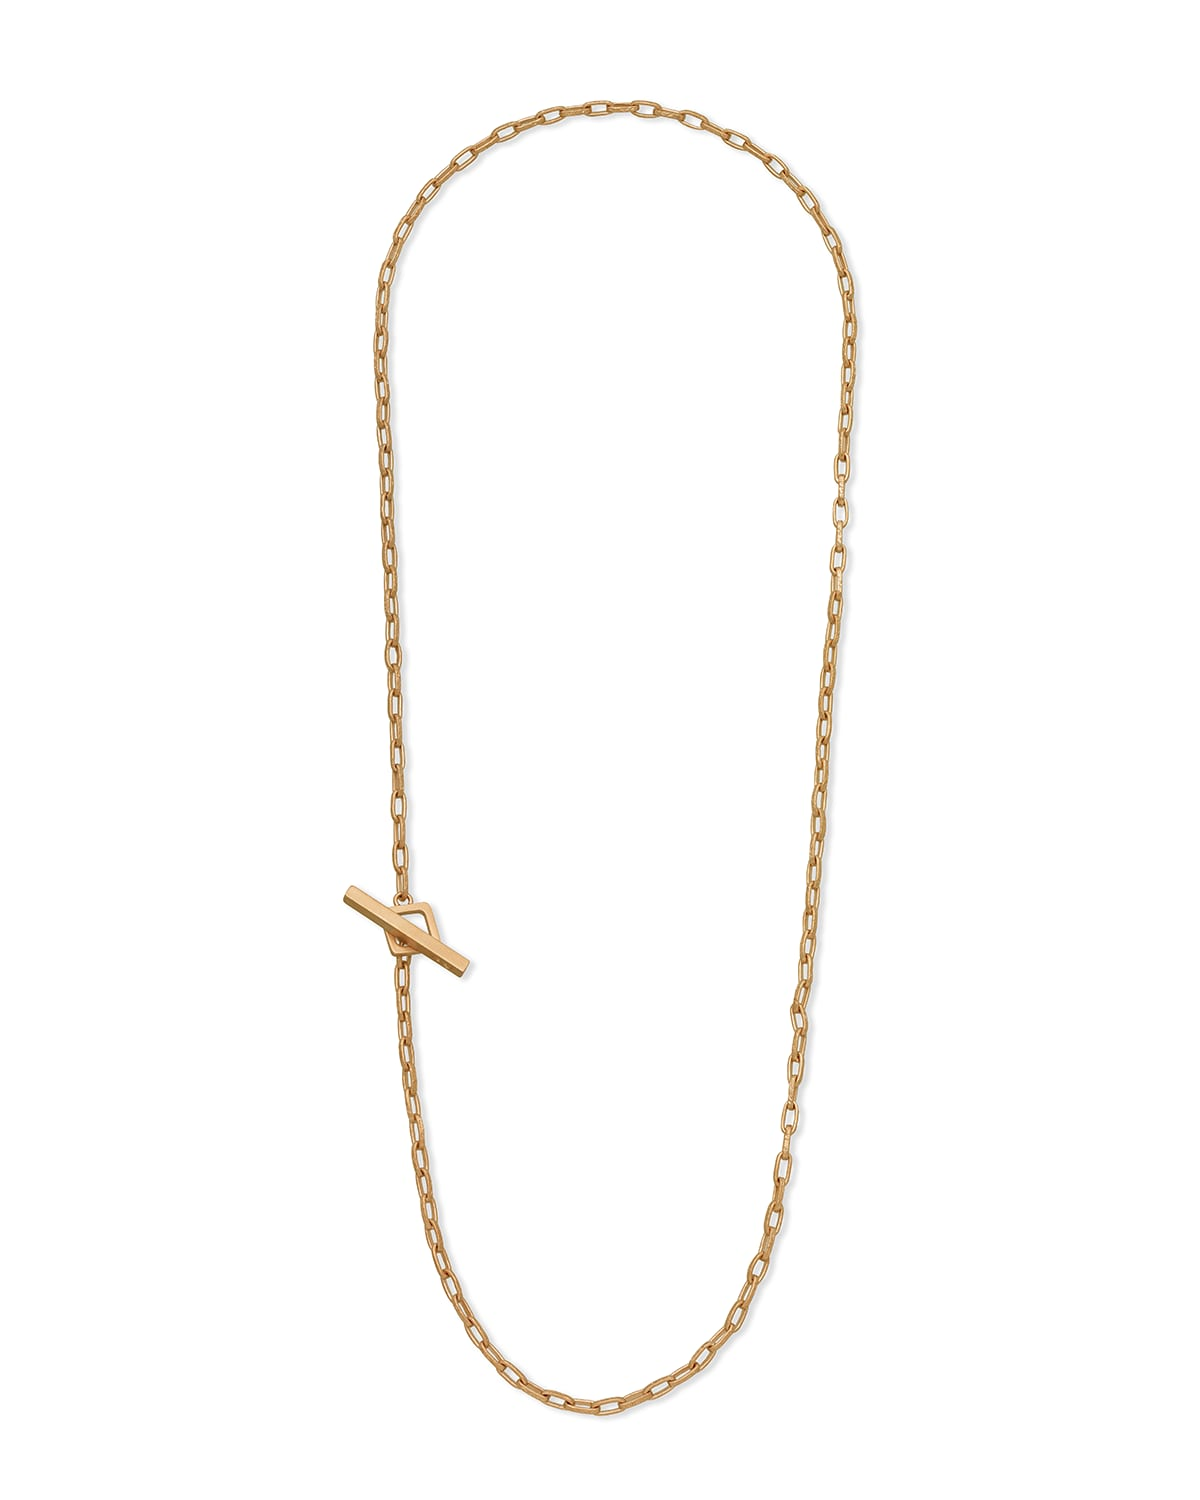 Handmade Yellow Gold Plated Silver Necklace with Matte Chain